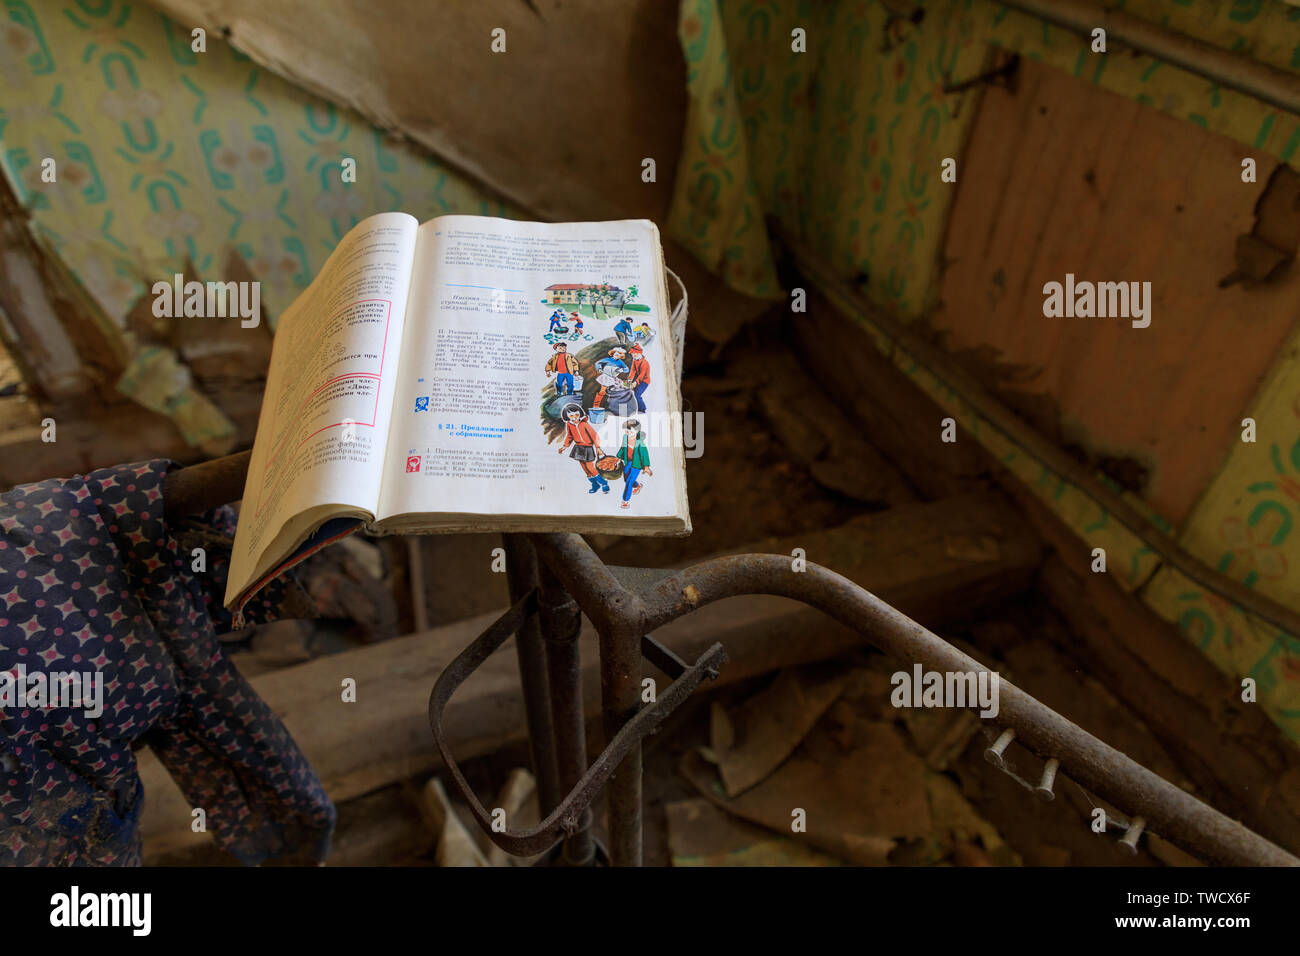 Eastern Europe, Ukraine, Pripyat, Chernobyl. Children's book showing how to help with farming and gardening. April 09, 2018. - Stock Image